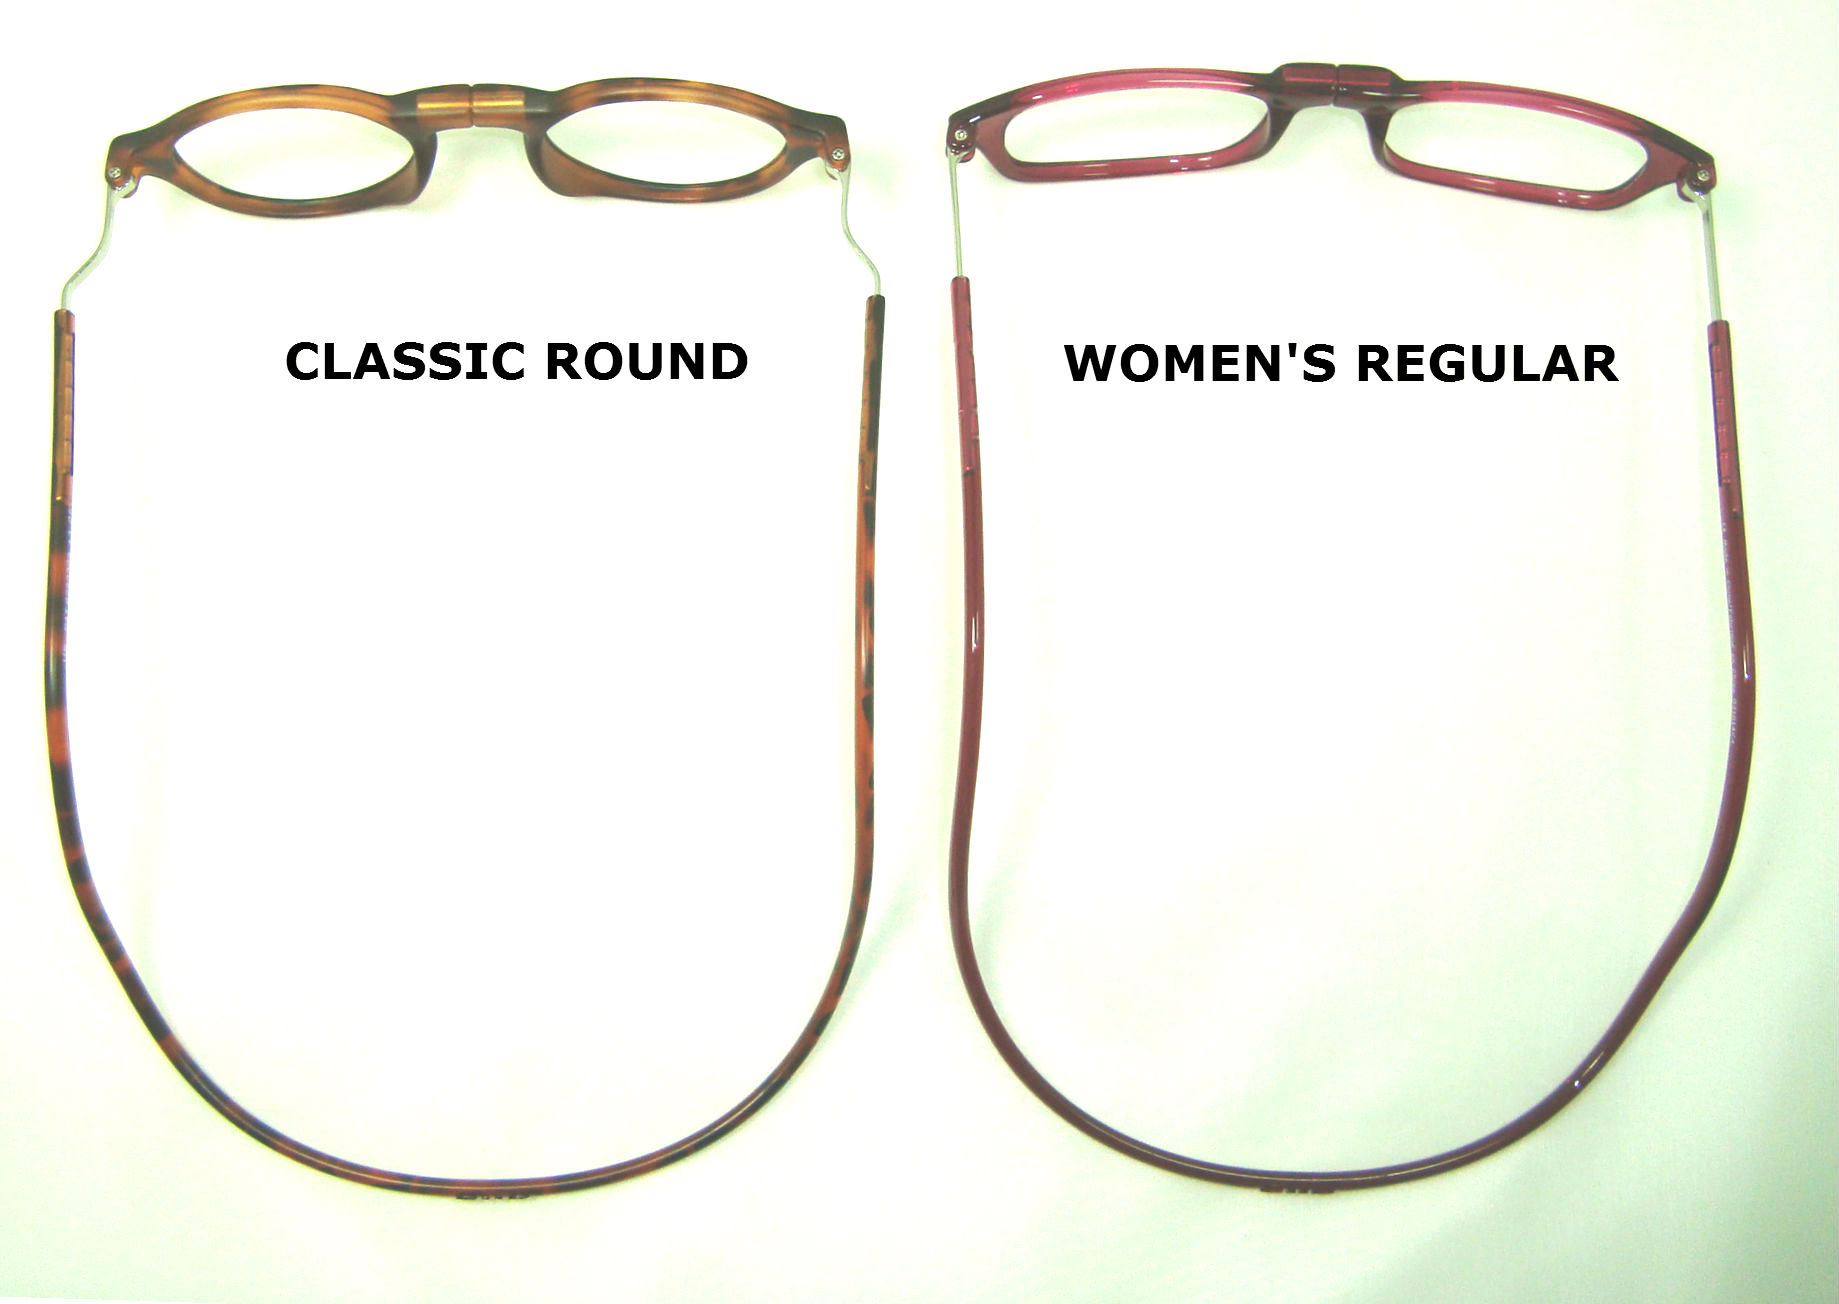 ROUND&WOMEN'S REGULAR WEB